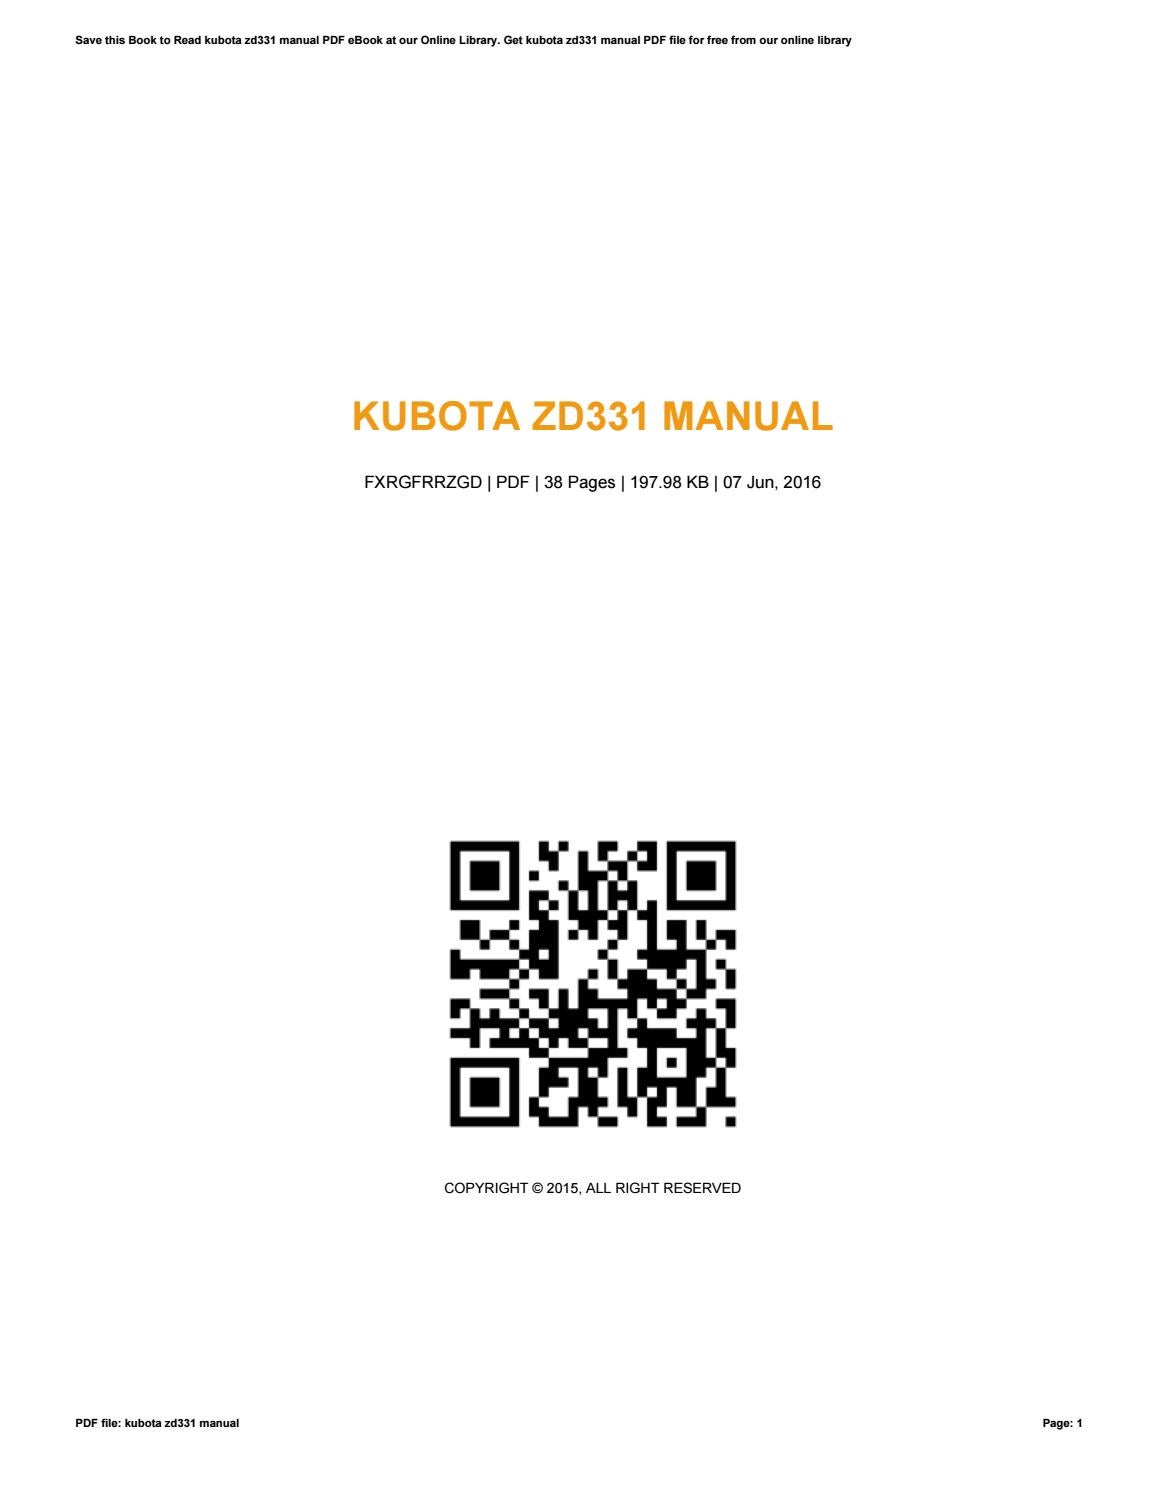 hight resolution of kubota zd331 manual by peterbennett4036 issuukubota zd331 wiring diagrams 20